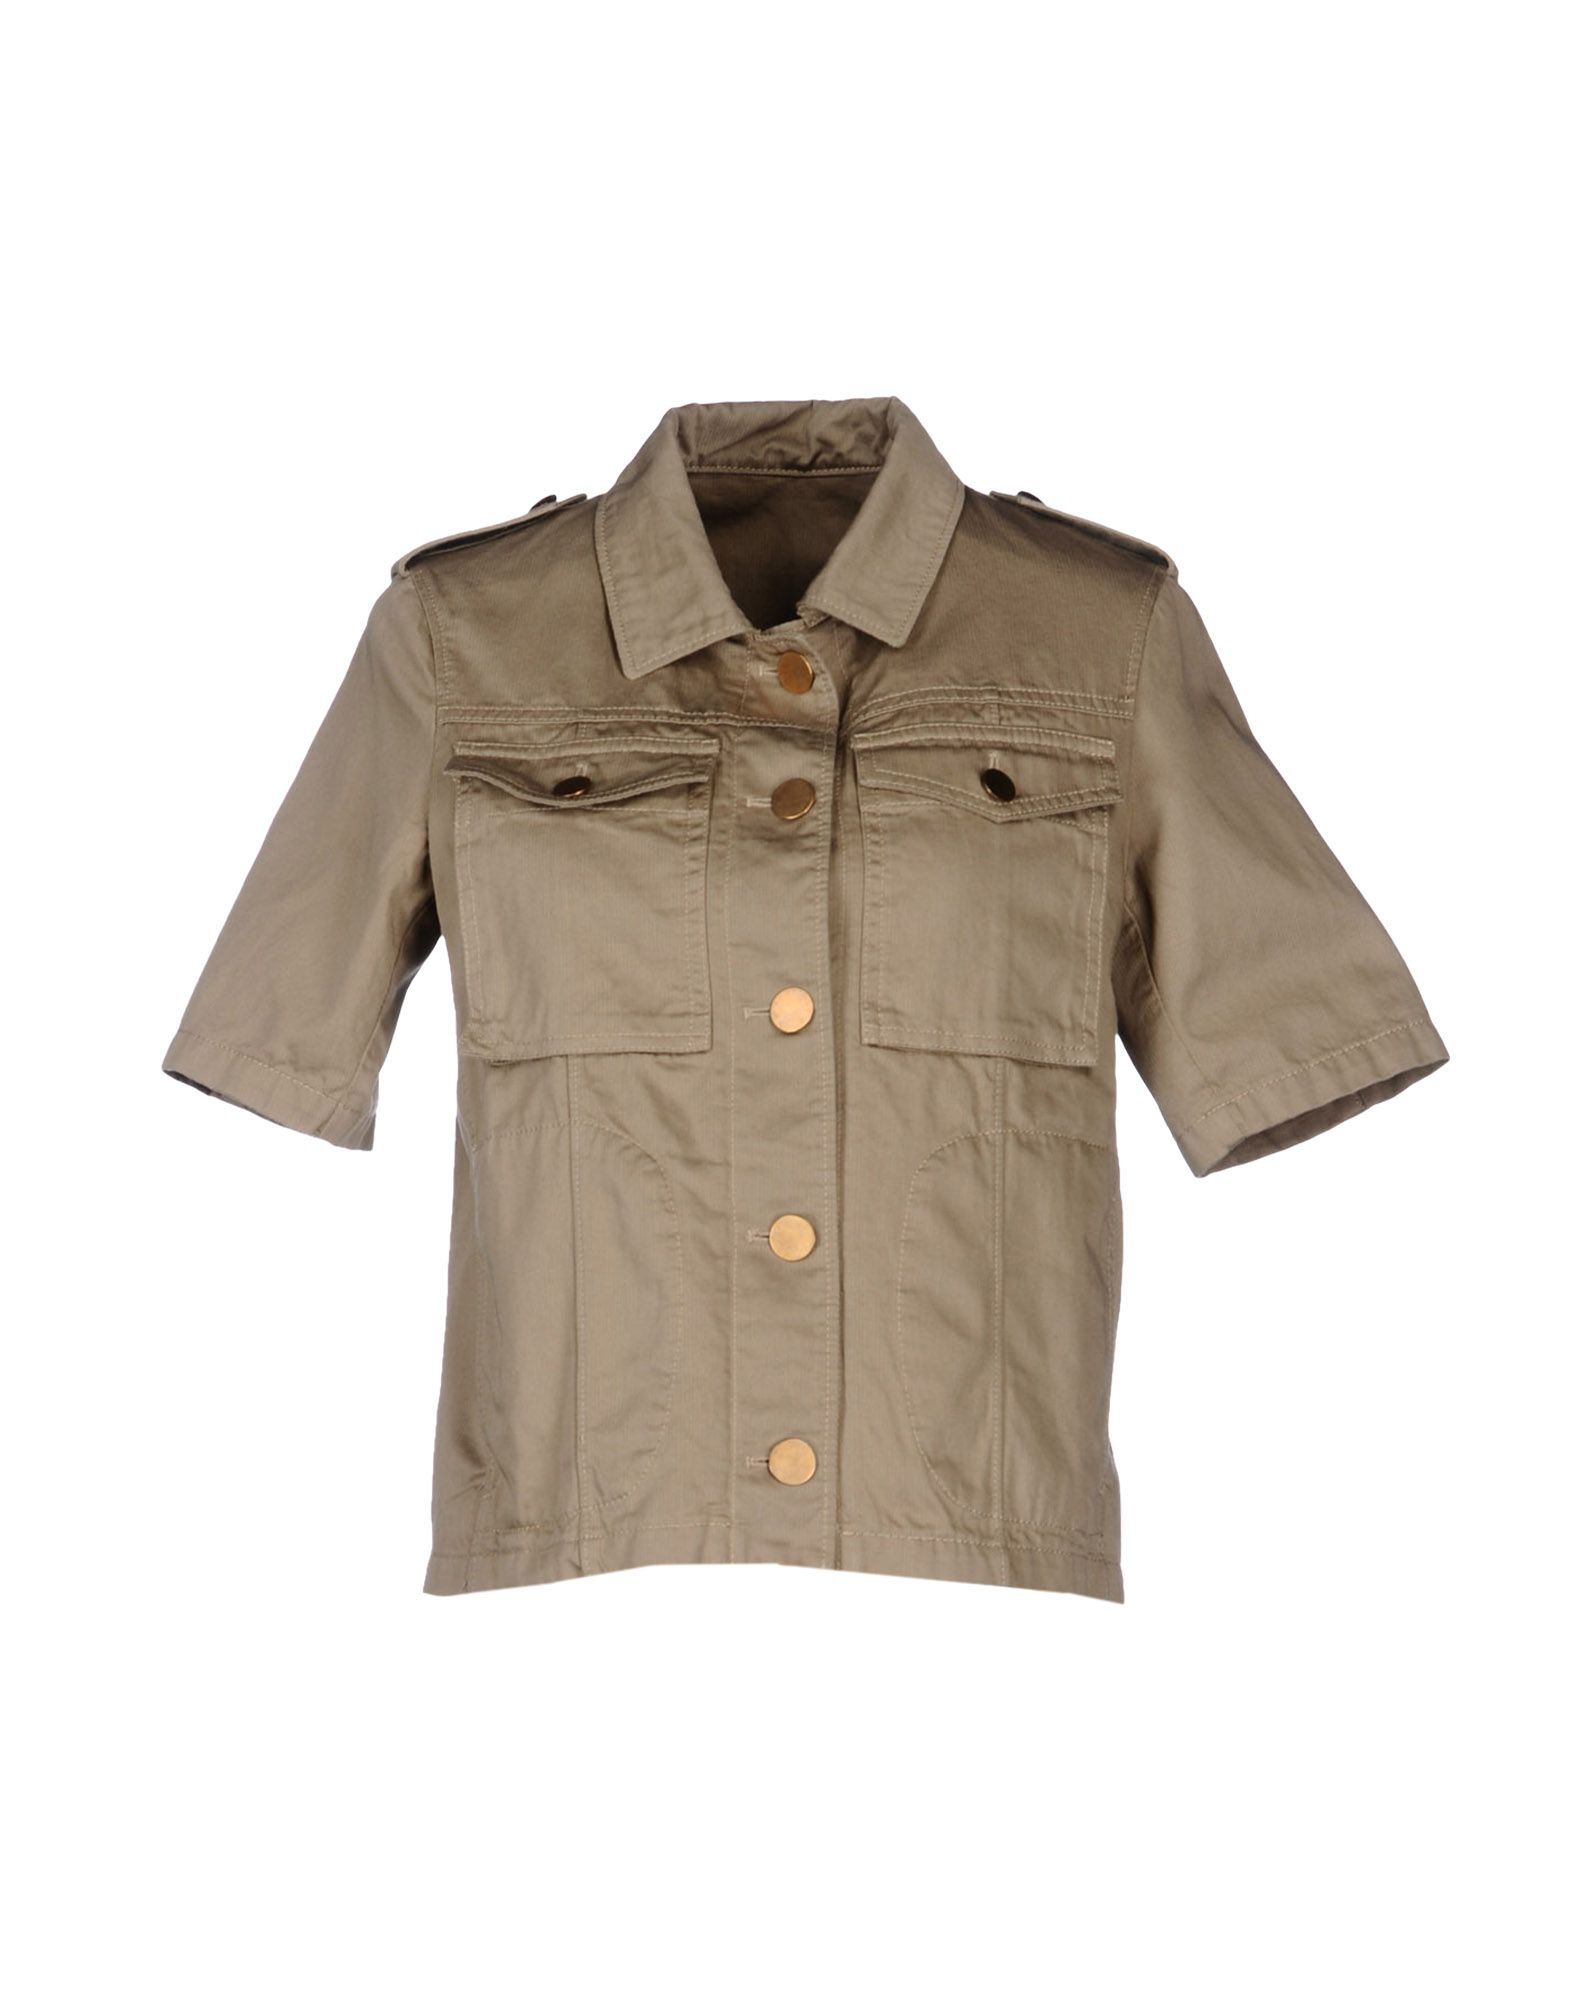 Old Khaki clothing is well made, durable and affordable. Pay with credit card, EFT or eBucks! Order online today and get free delivery on orders over R!